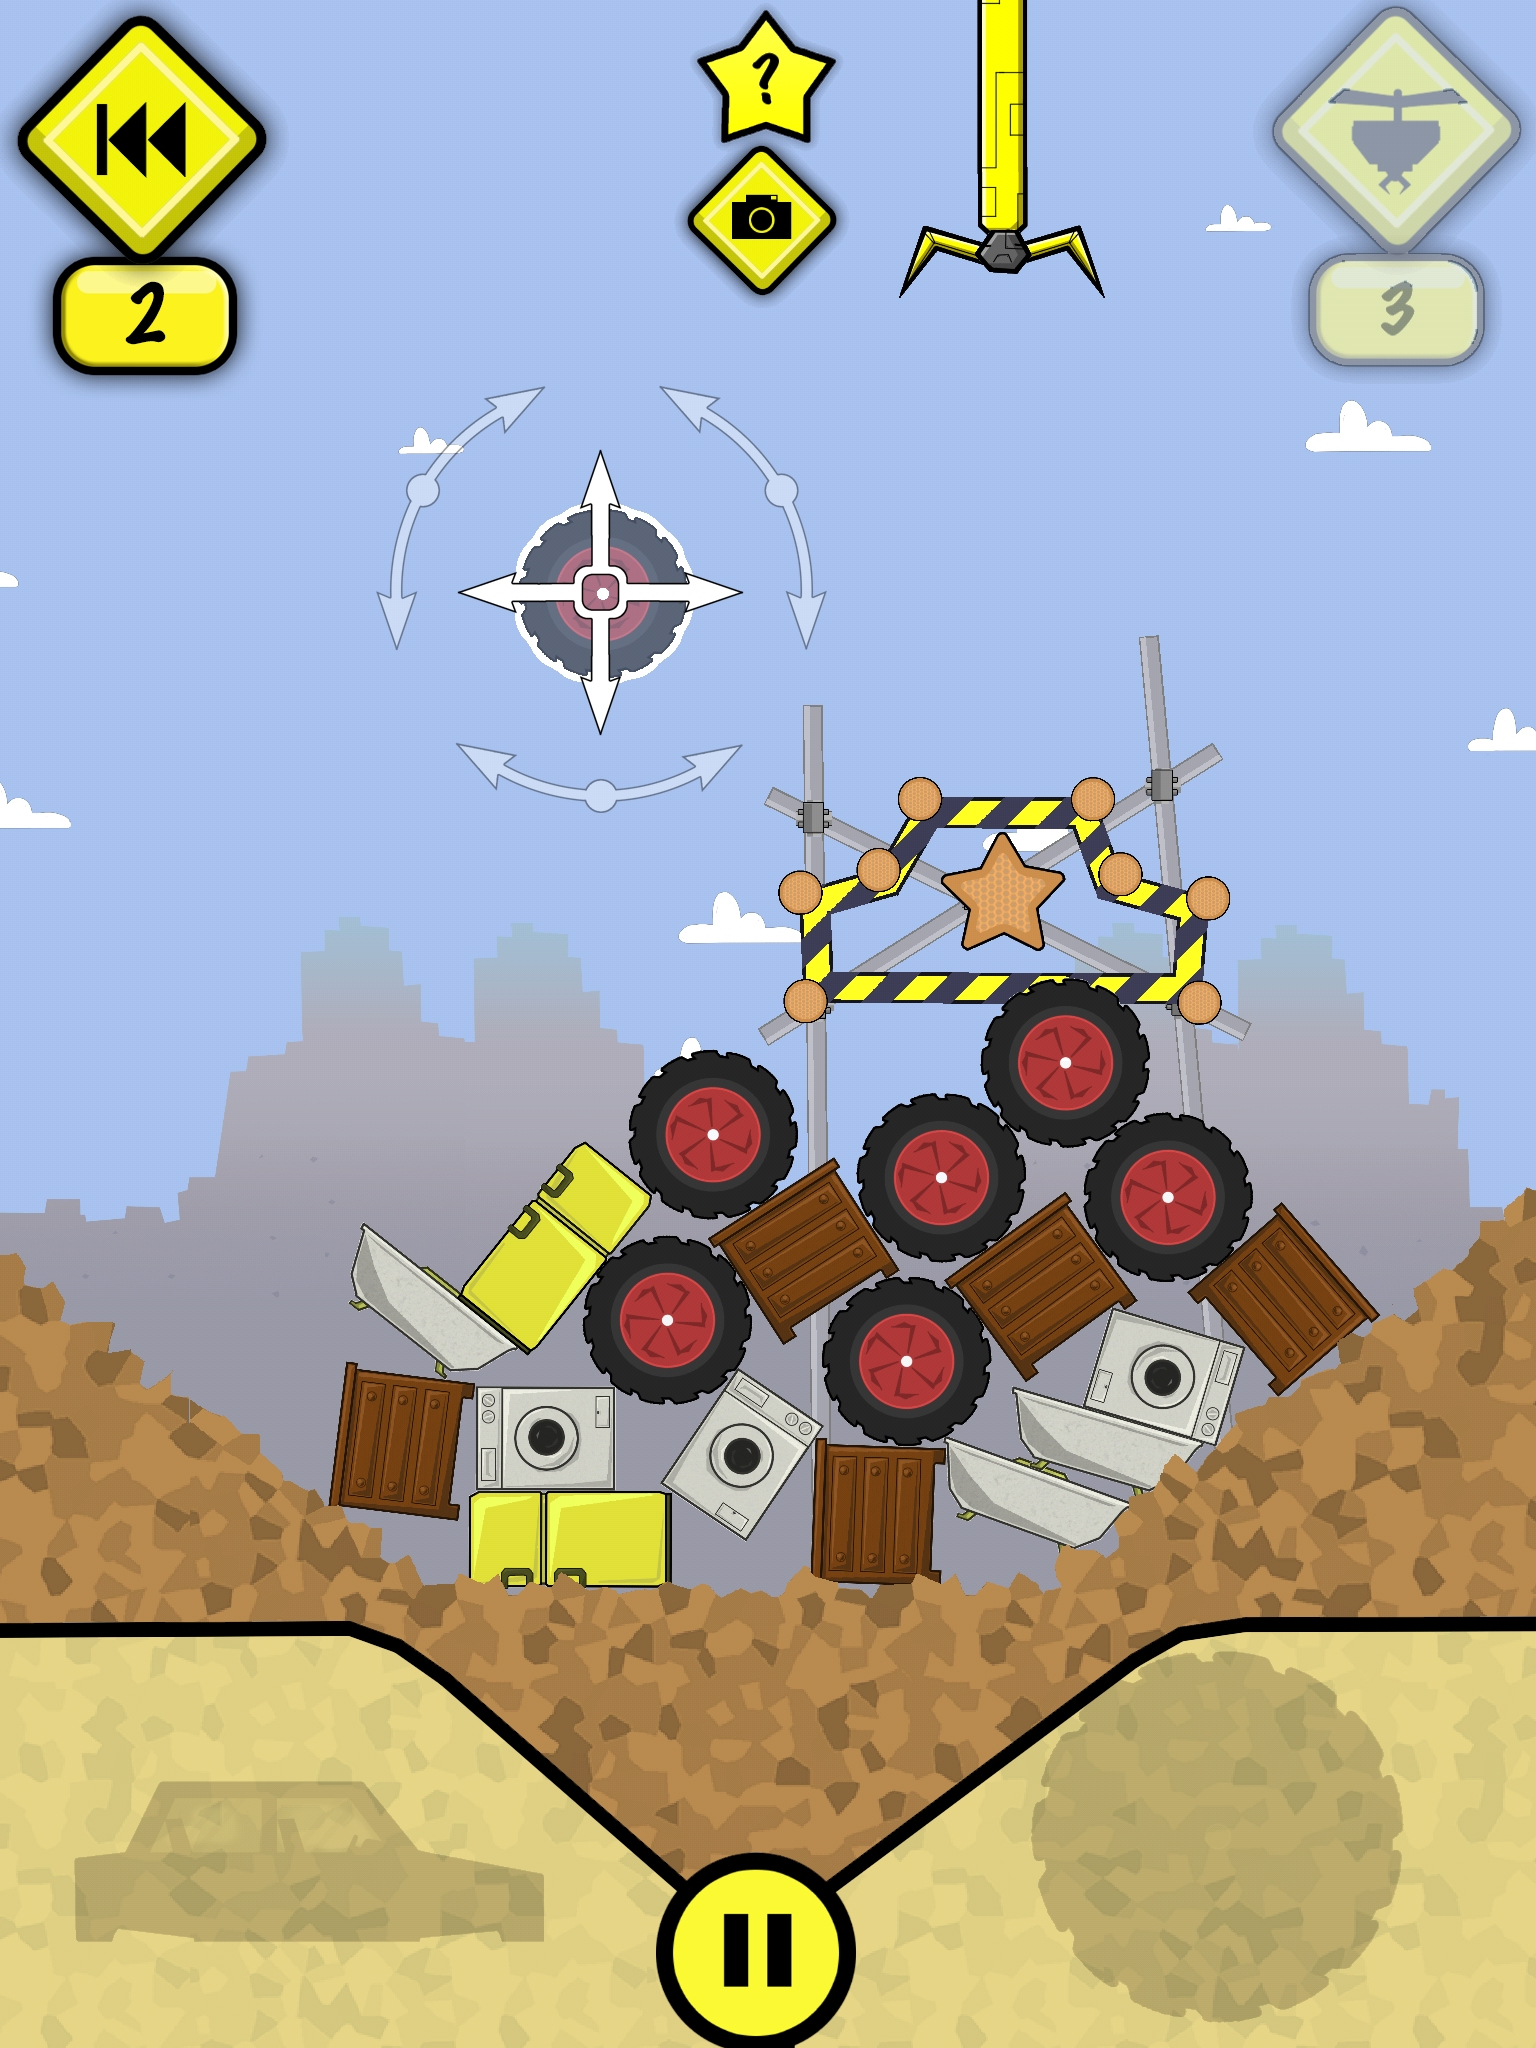 Stack up tyres, fridges, and cars to make a stable tower in physics-based iOS action-puzzler Scrapyard